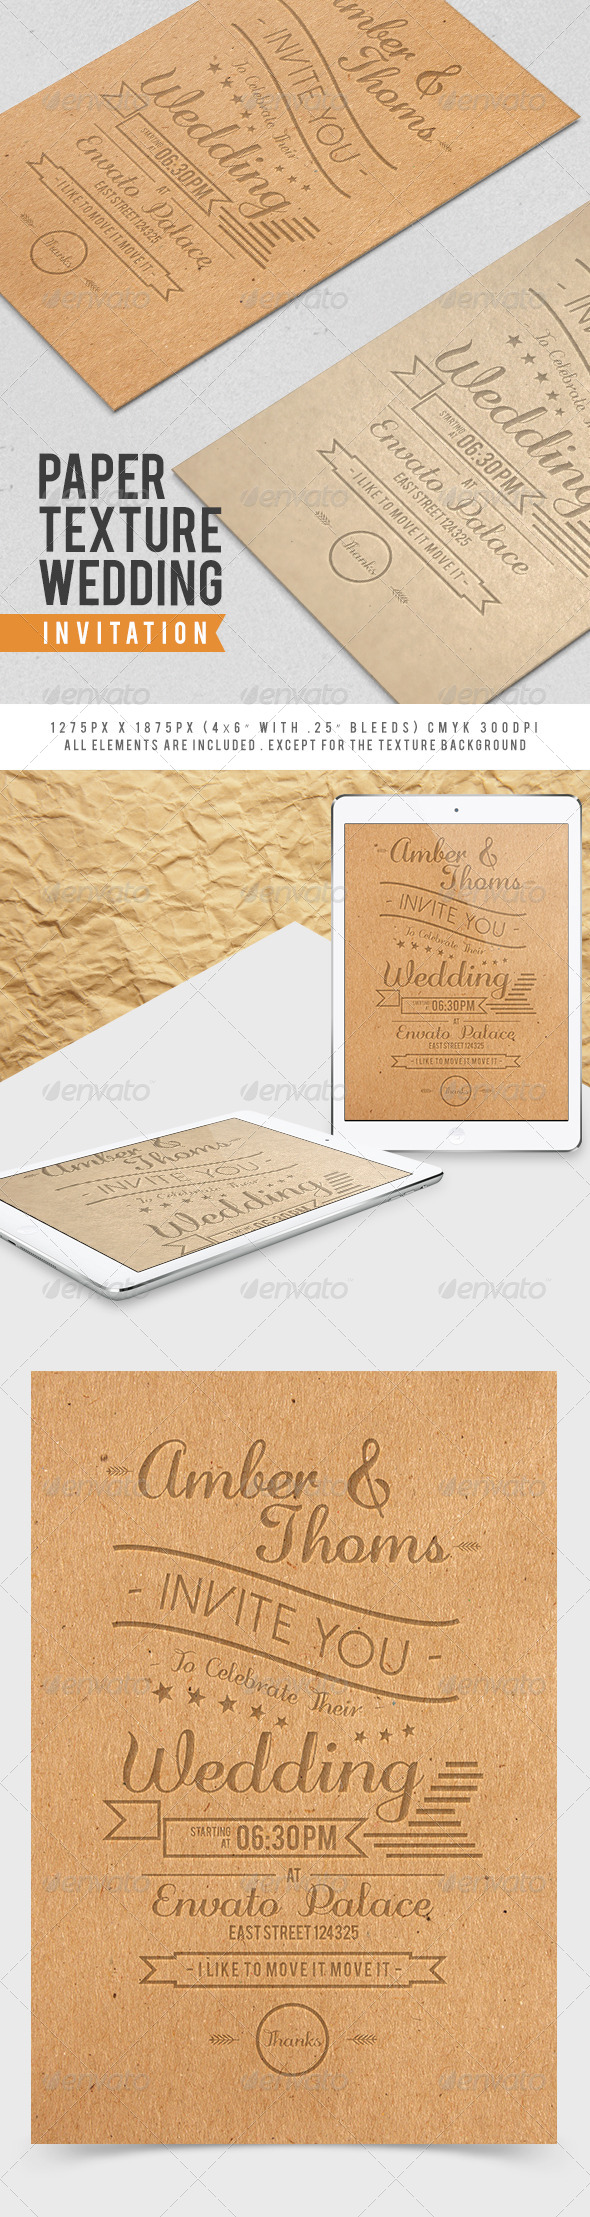 Paper Texture Wedding Invitation - Weddings Cards & Invites